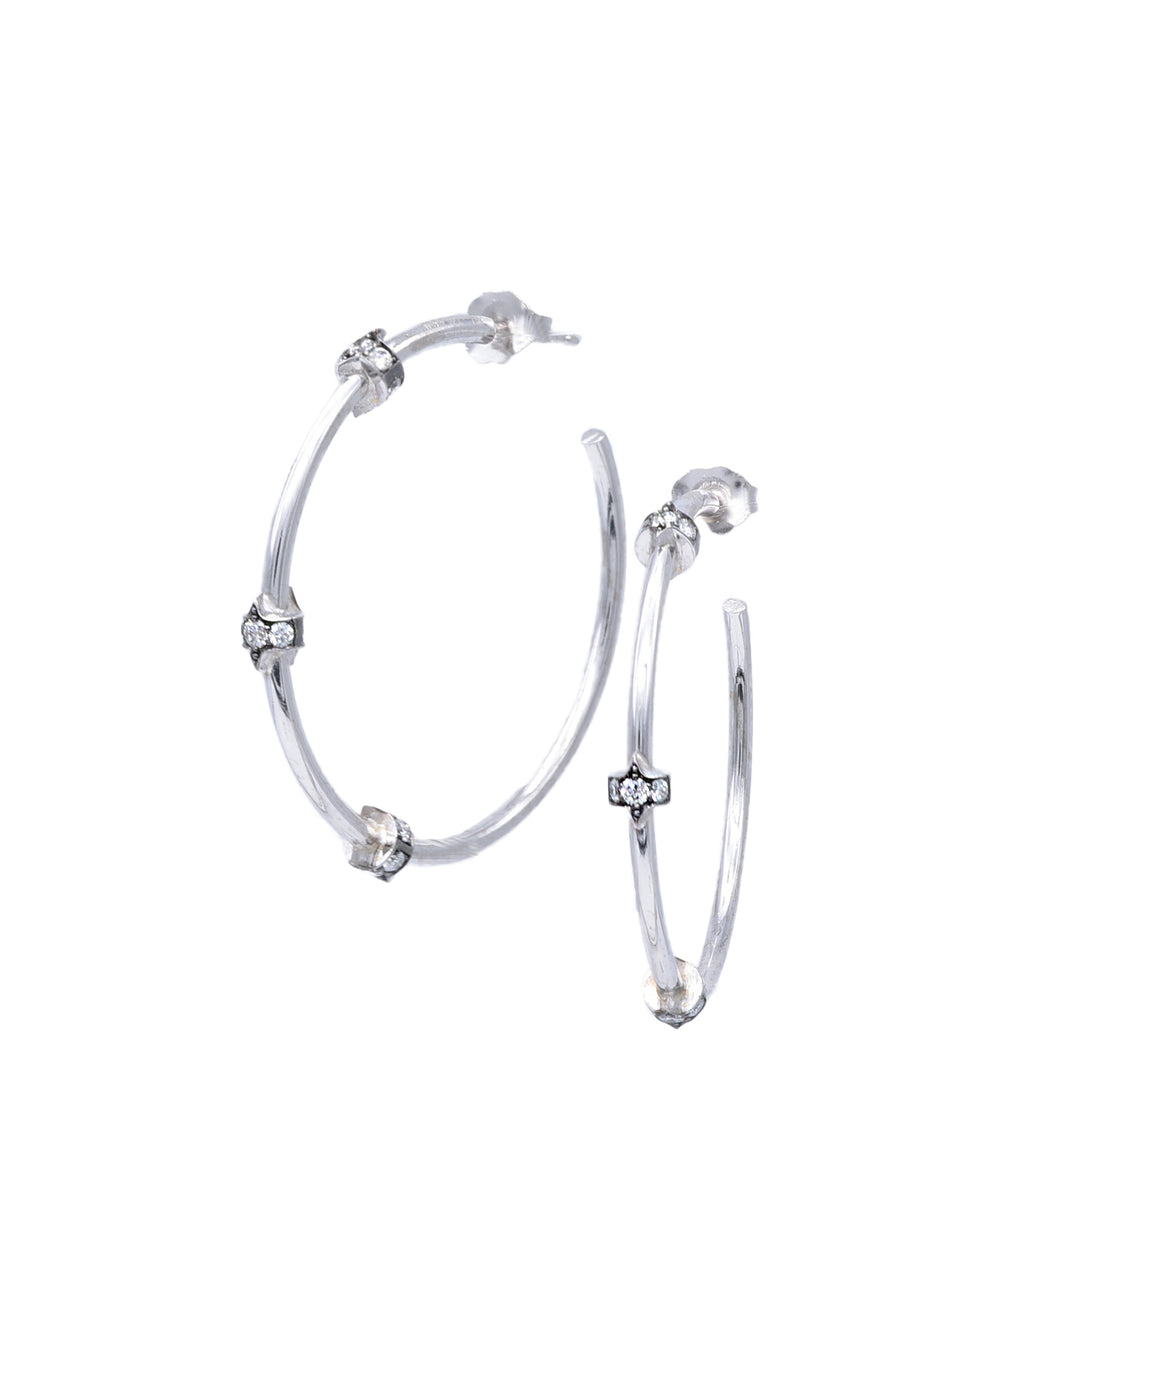 Simple white gold hoops with diamonds